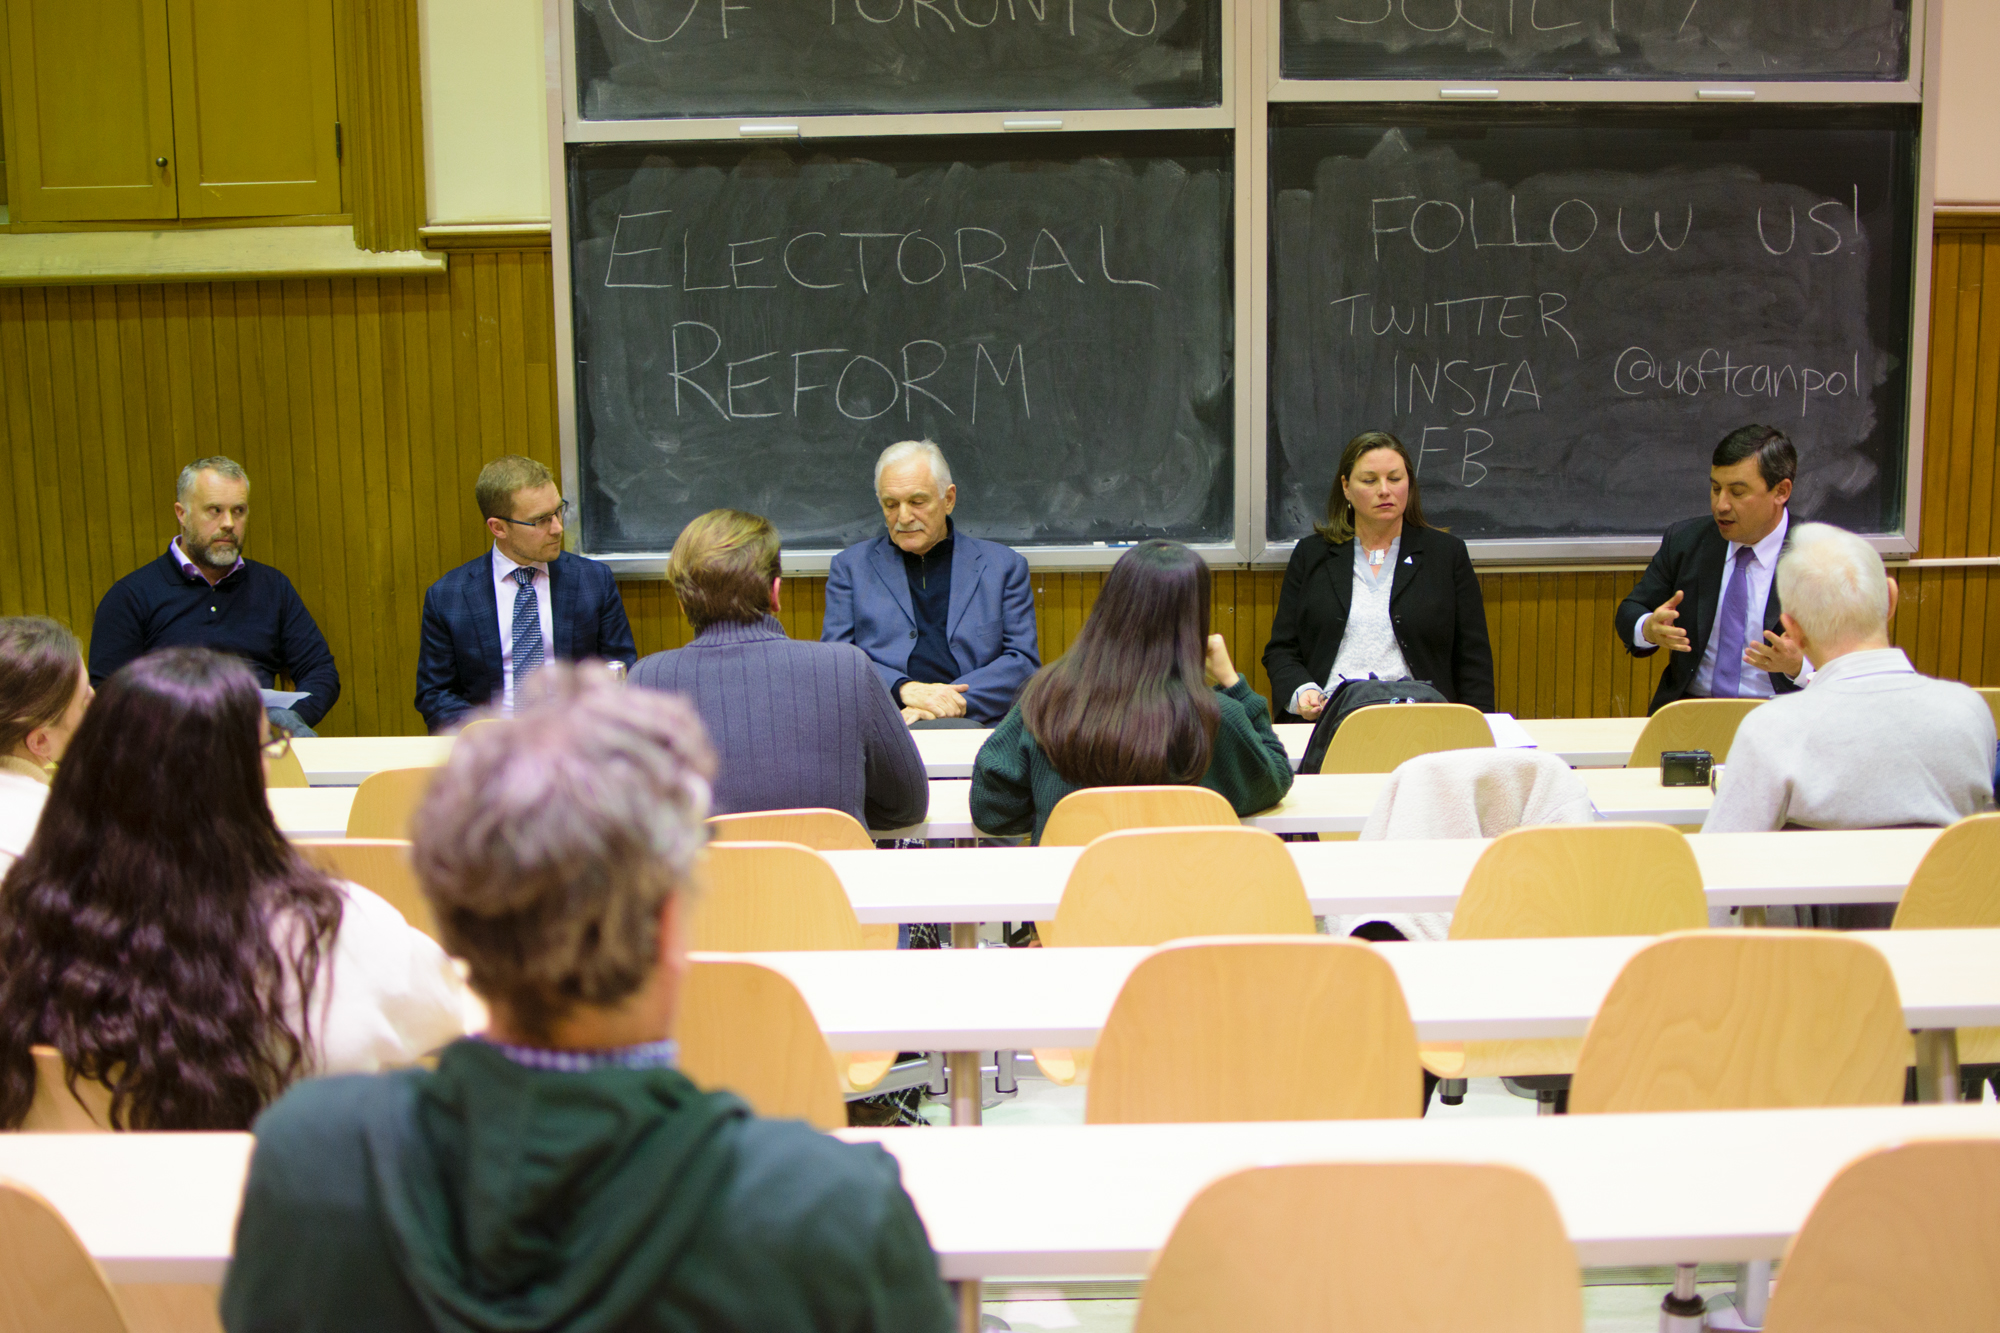 - Academic PanelsThroughout the year, we hold a variety of panels on a multitude of Canadian politics issues. Some of our previous topics include politics in WWI, electoral reform, and women of colour in politics.